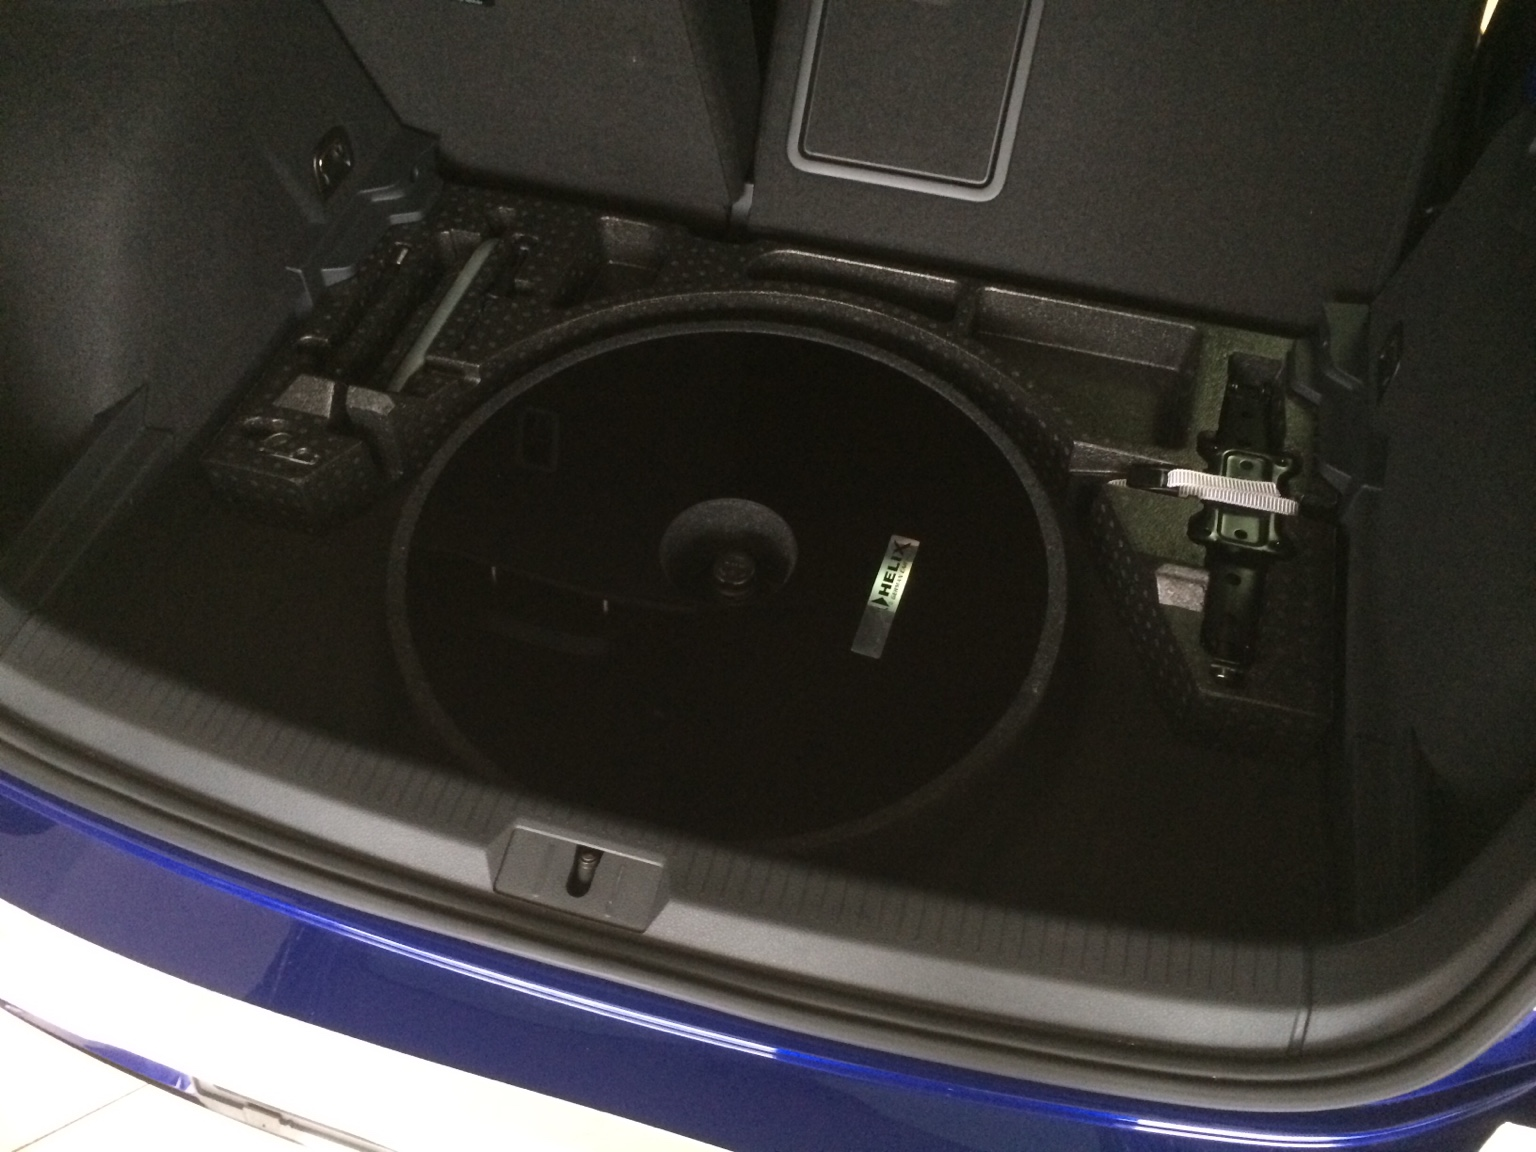 Vwvortexcom Helix Subwoofer And Golf R Helical Wire Harness Lay Really Nice Upgrade For Money